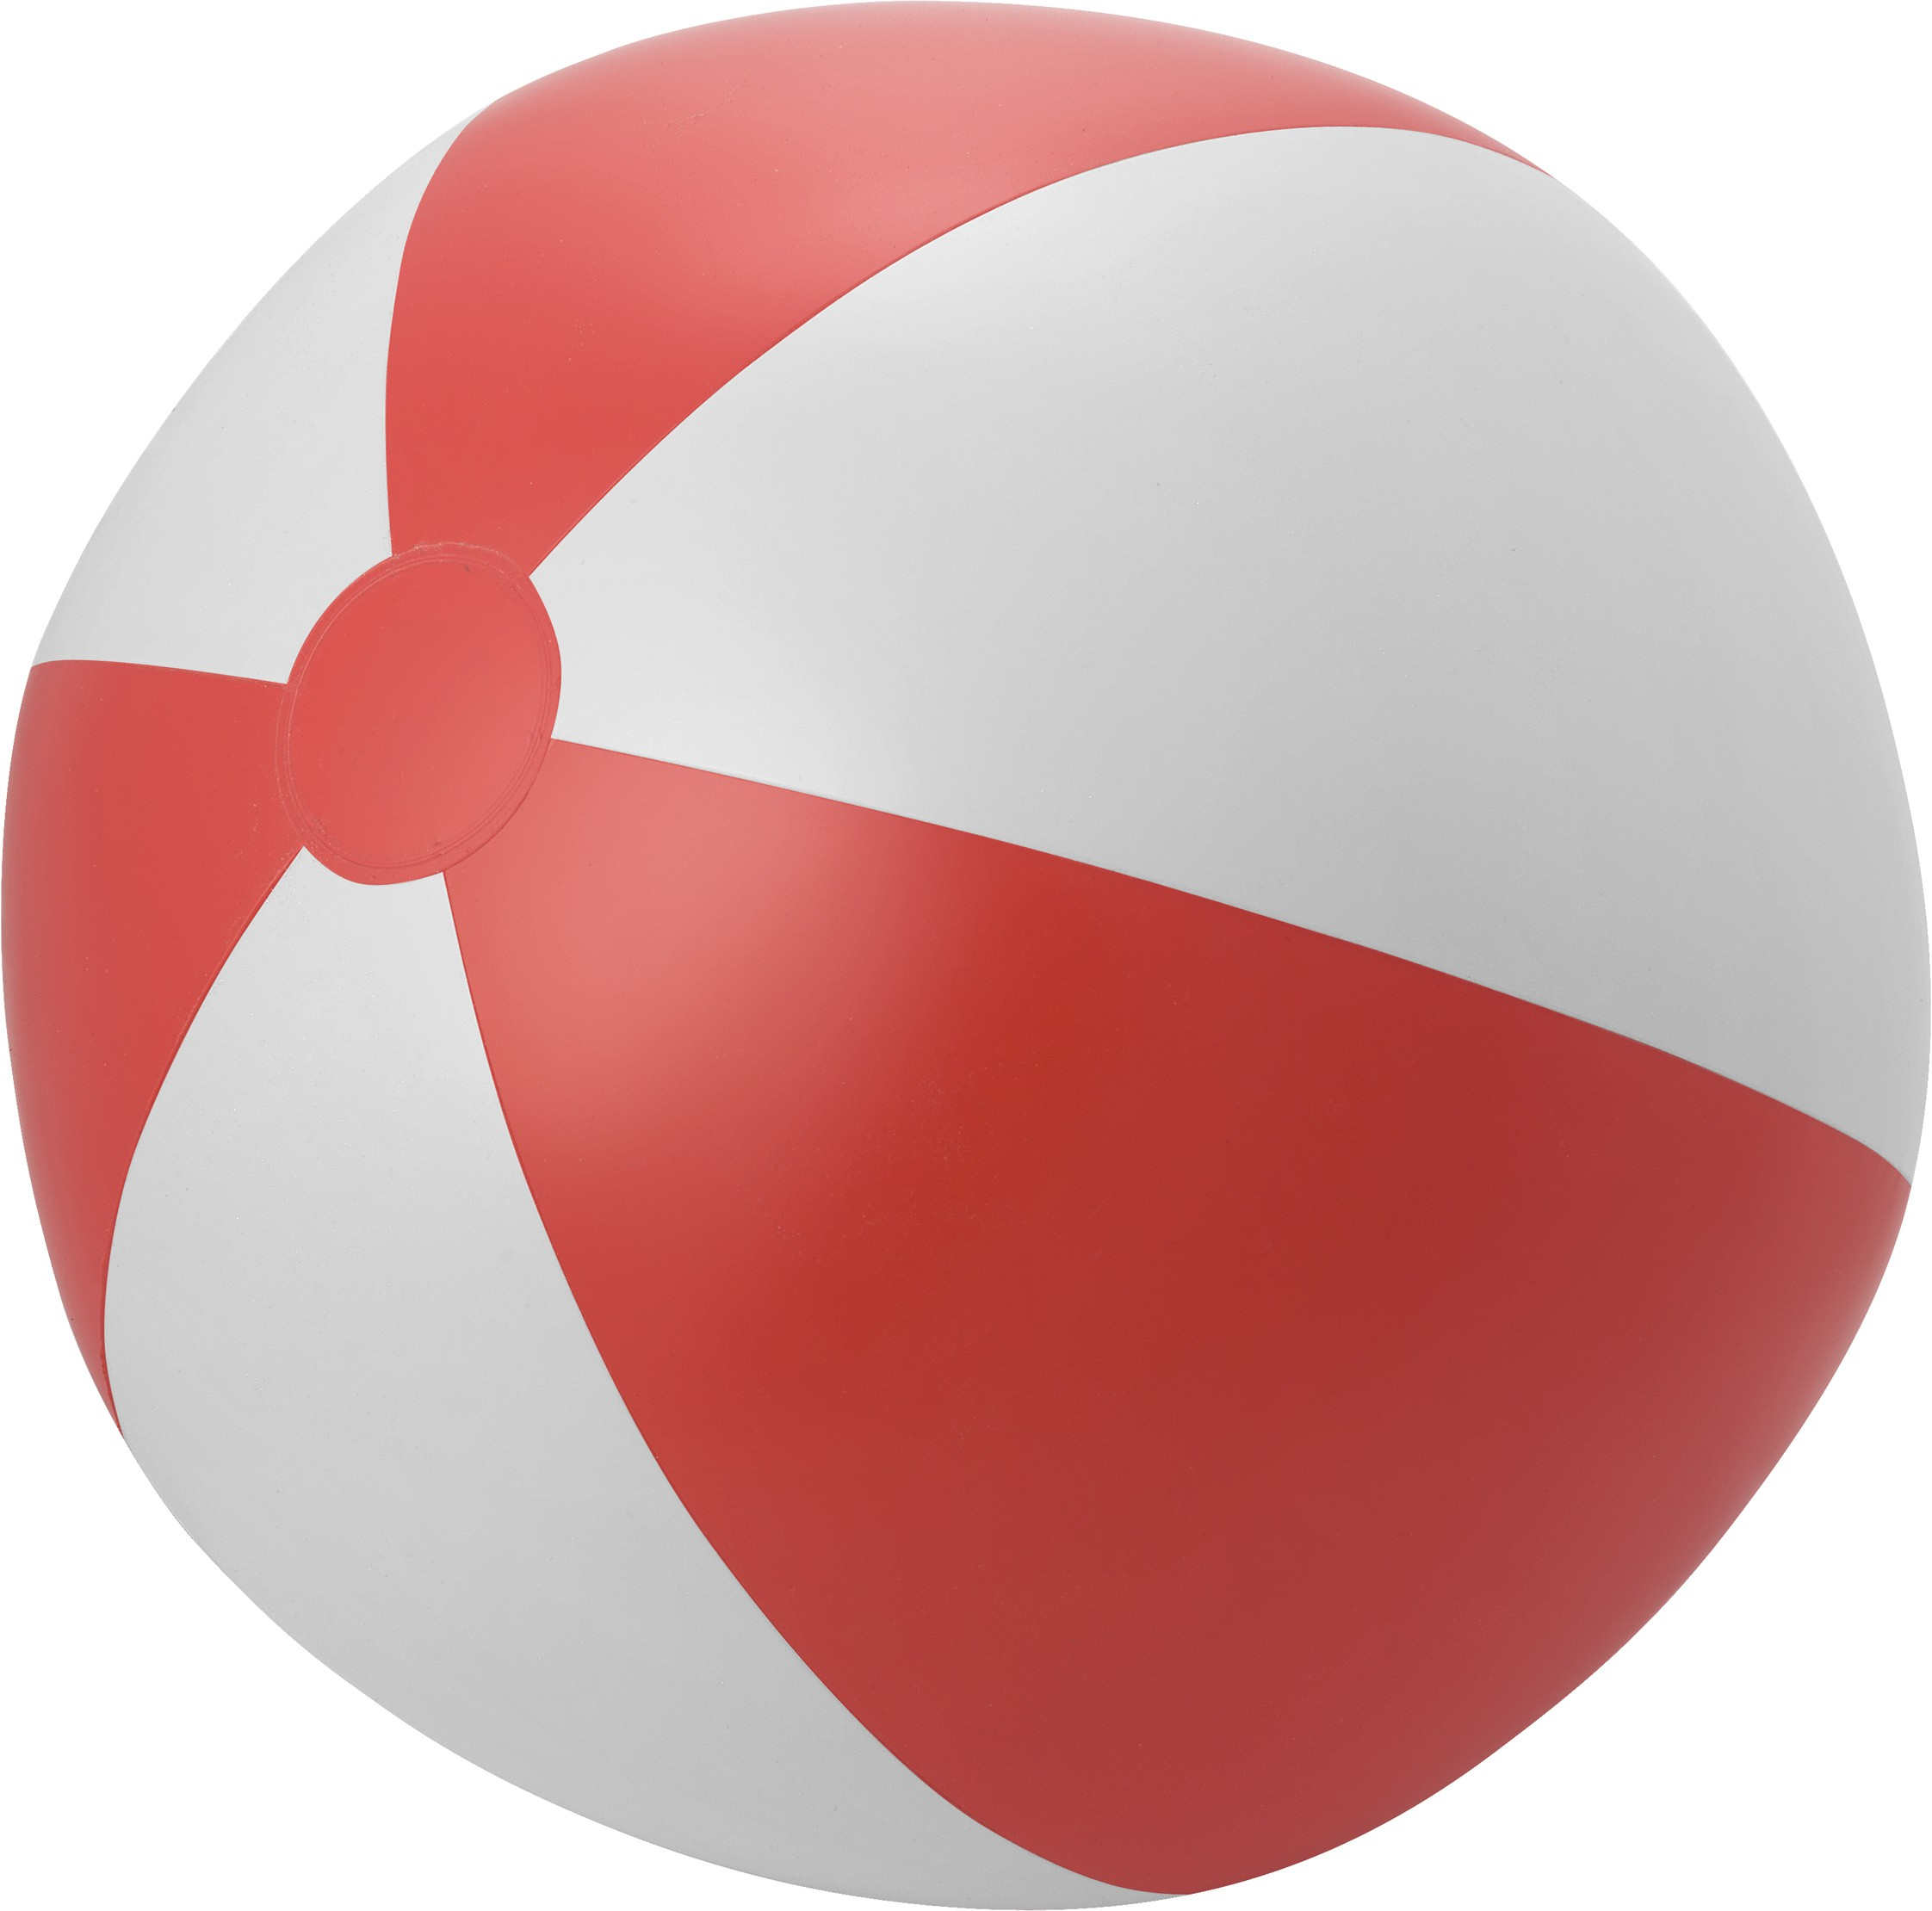 Large pvc beach ball. Beachball clipart equipment